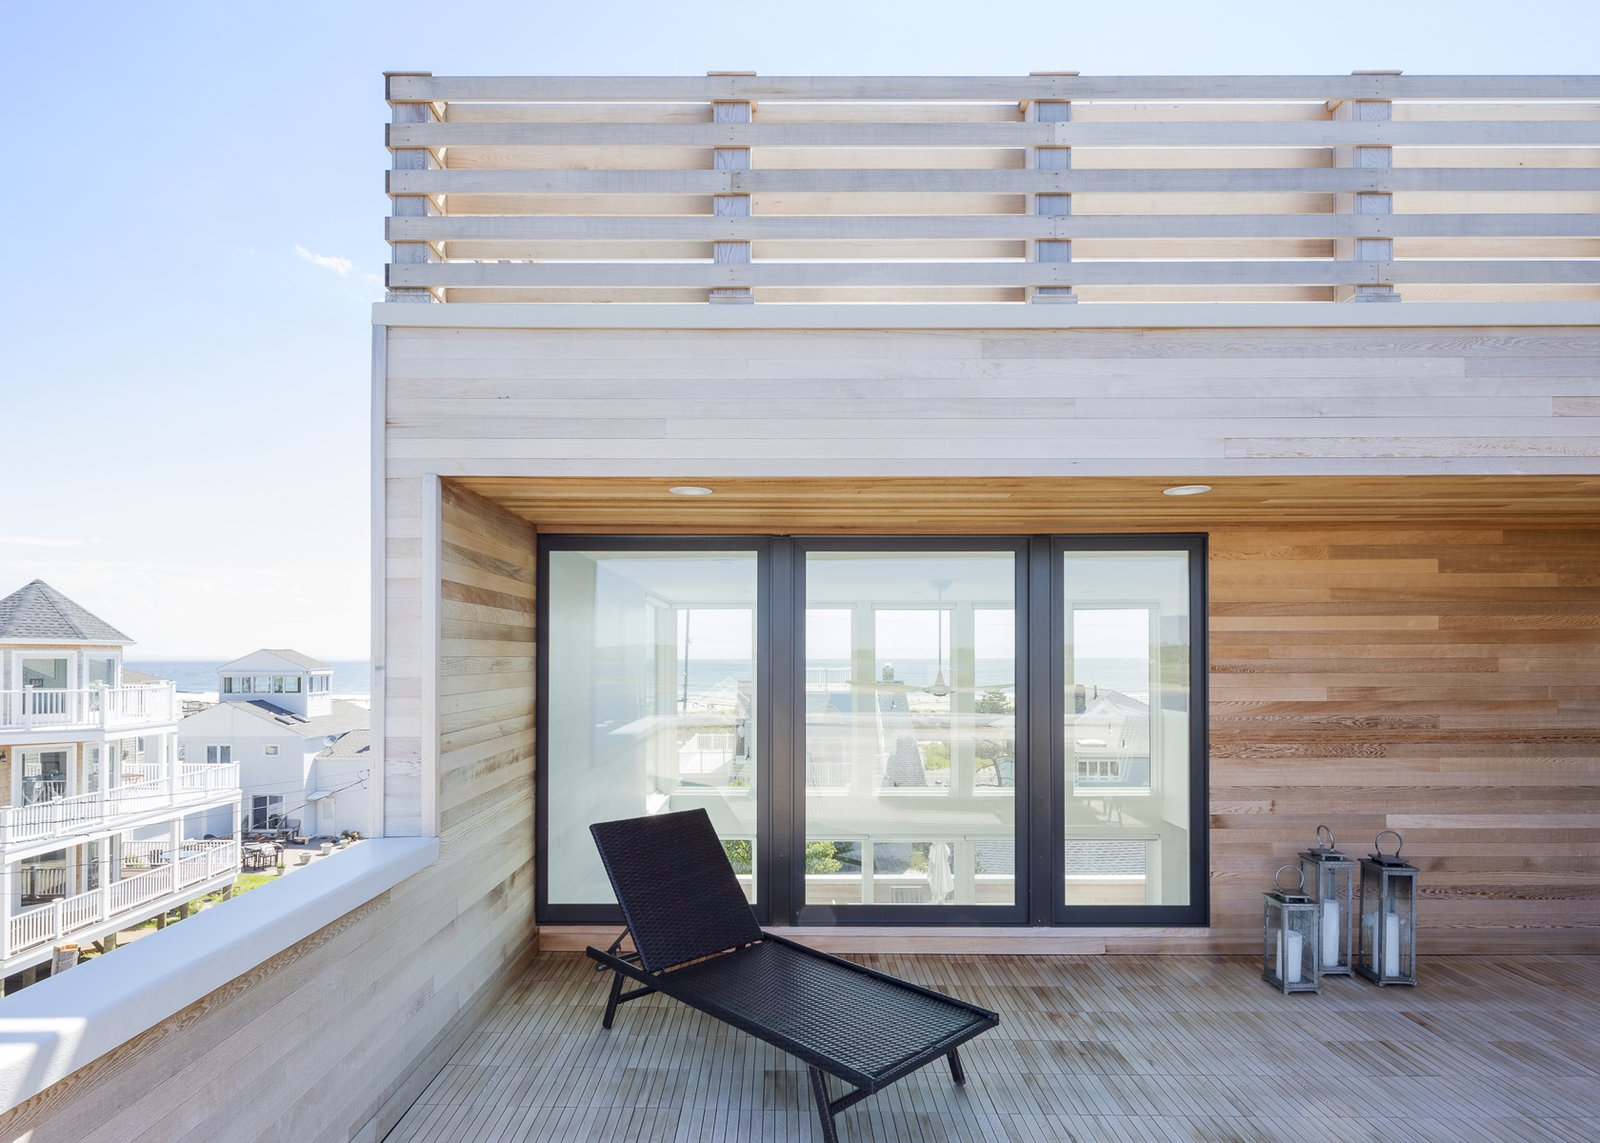 Outdoor, Horizontal Fences, Wall, Rooftop, Wood Patio, Porch, Deck, Decking Patio, Porch, Deck, and Wood Fences, Wall Riverside deck looking through house to ocean  Sea Bright House by Jeff Jordan Architects